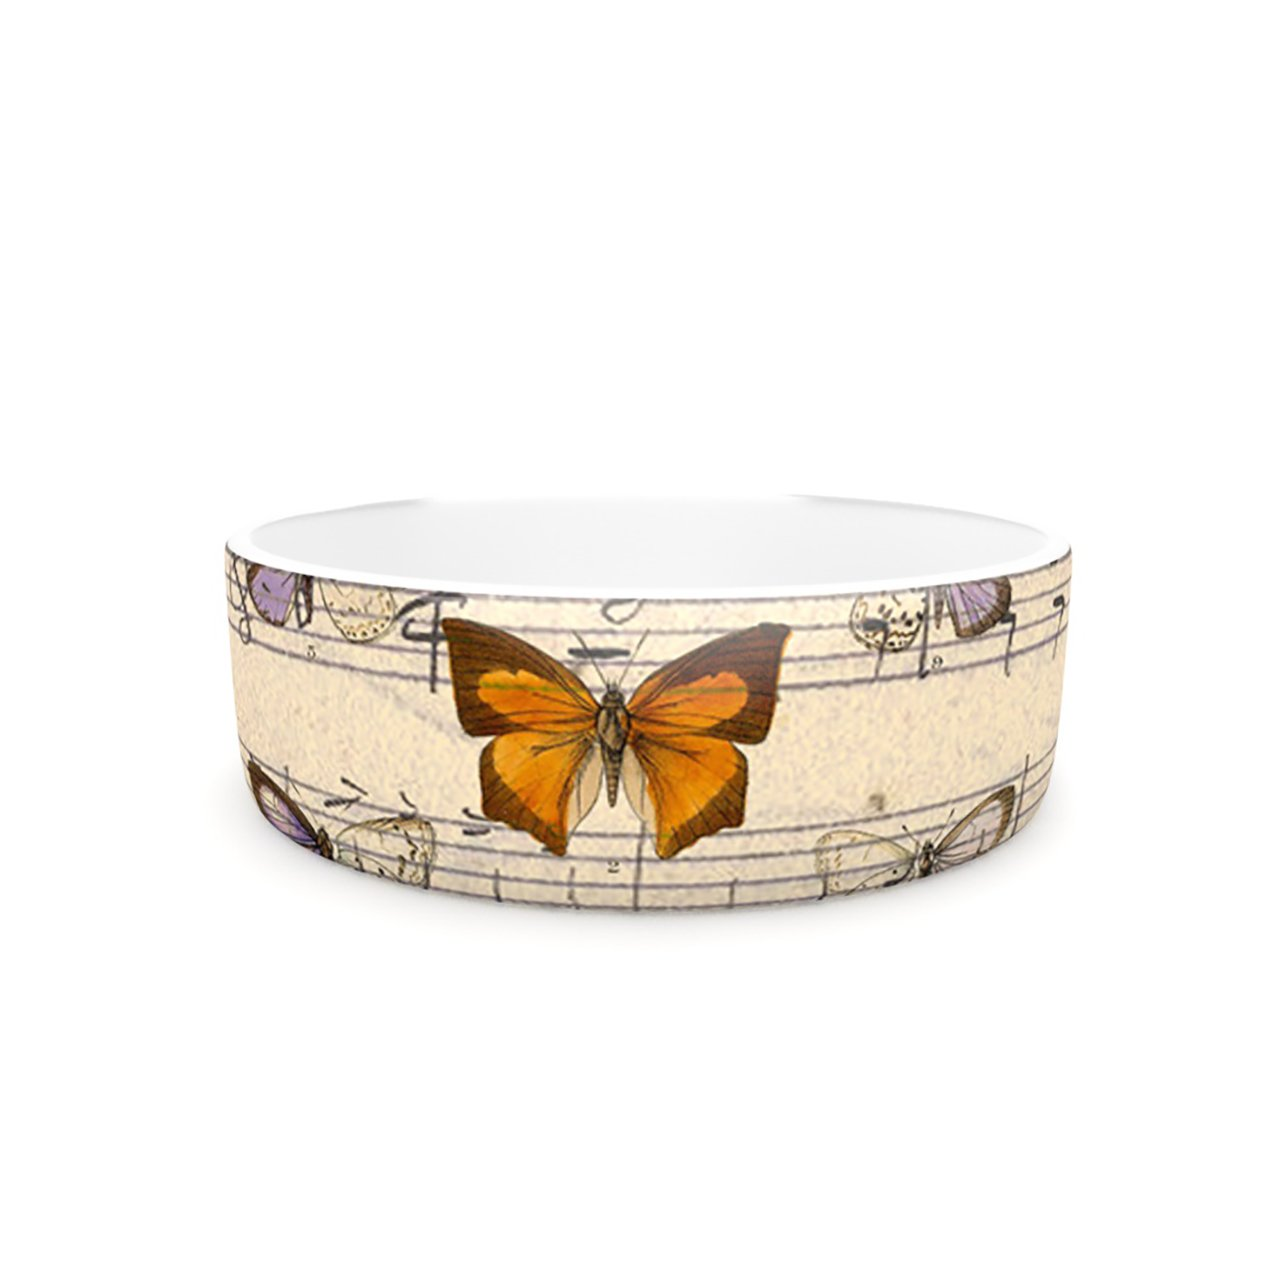 Kess InHouse Suzanne Carter Butterfly Opera  Pet Bowl, 7-Inch, Music Tan